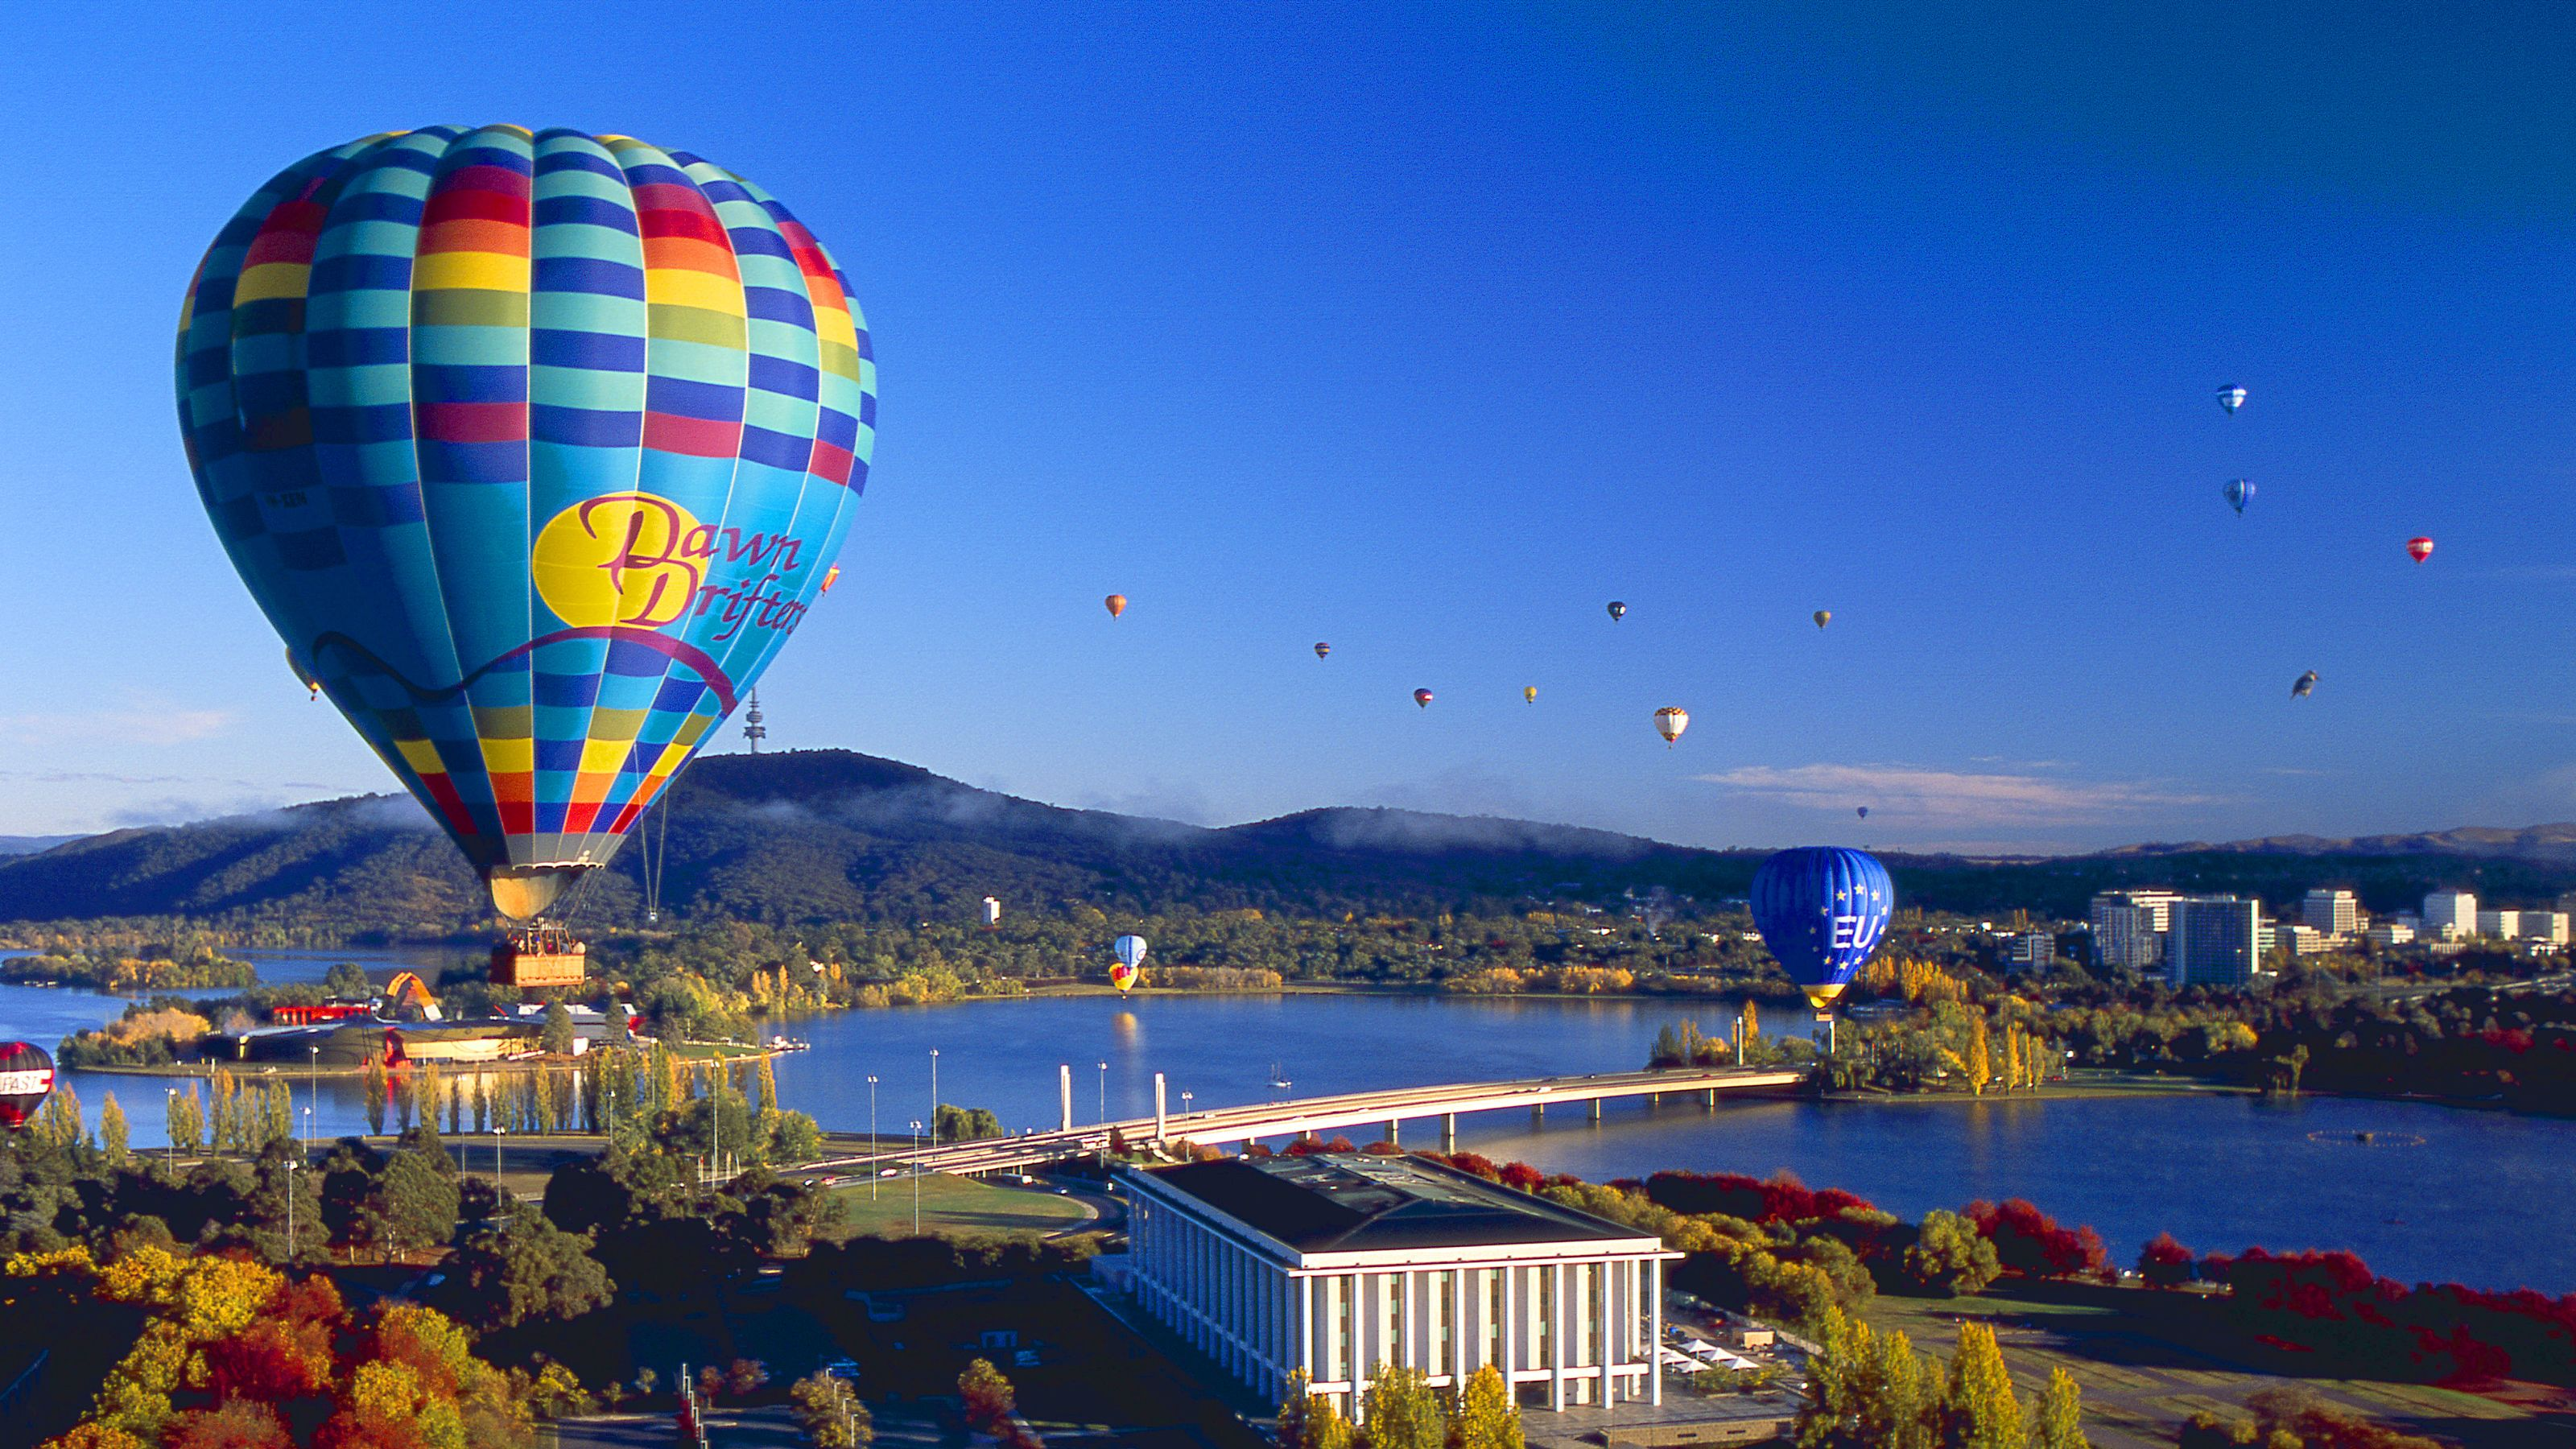 Hot air balloons drifting over Canberra.